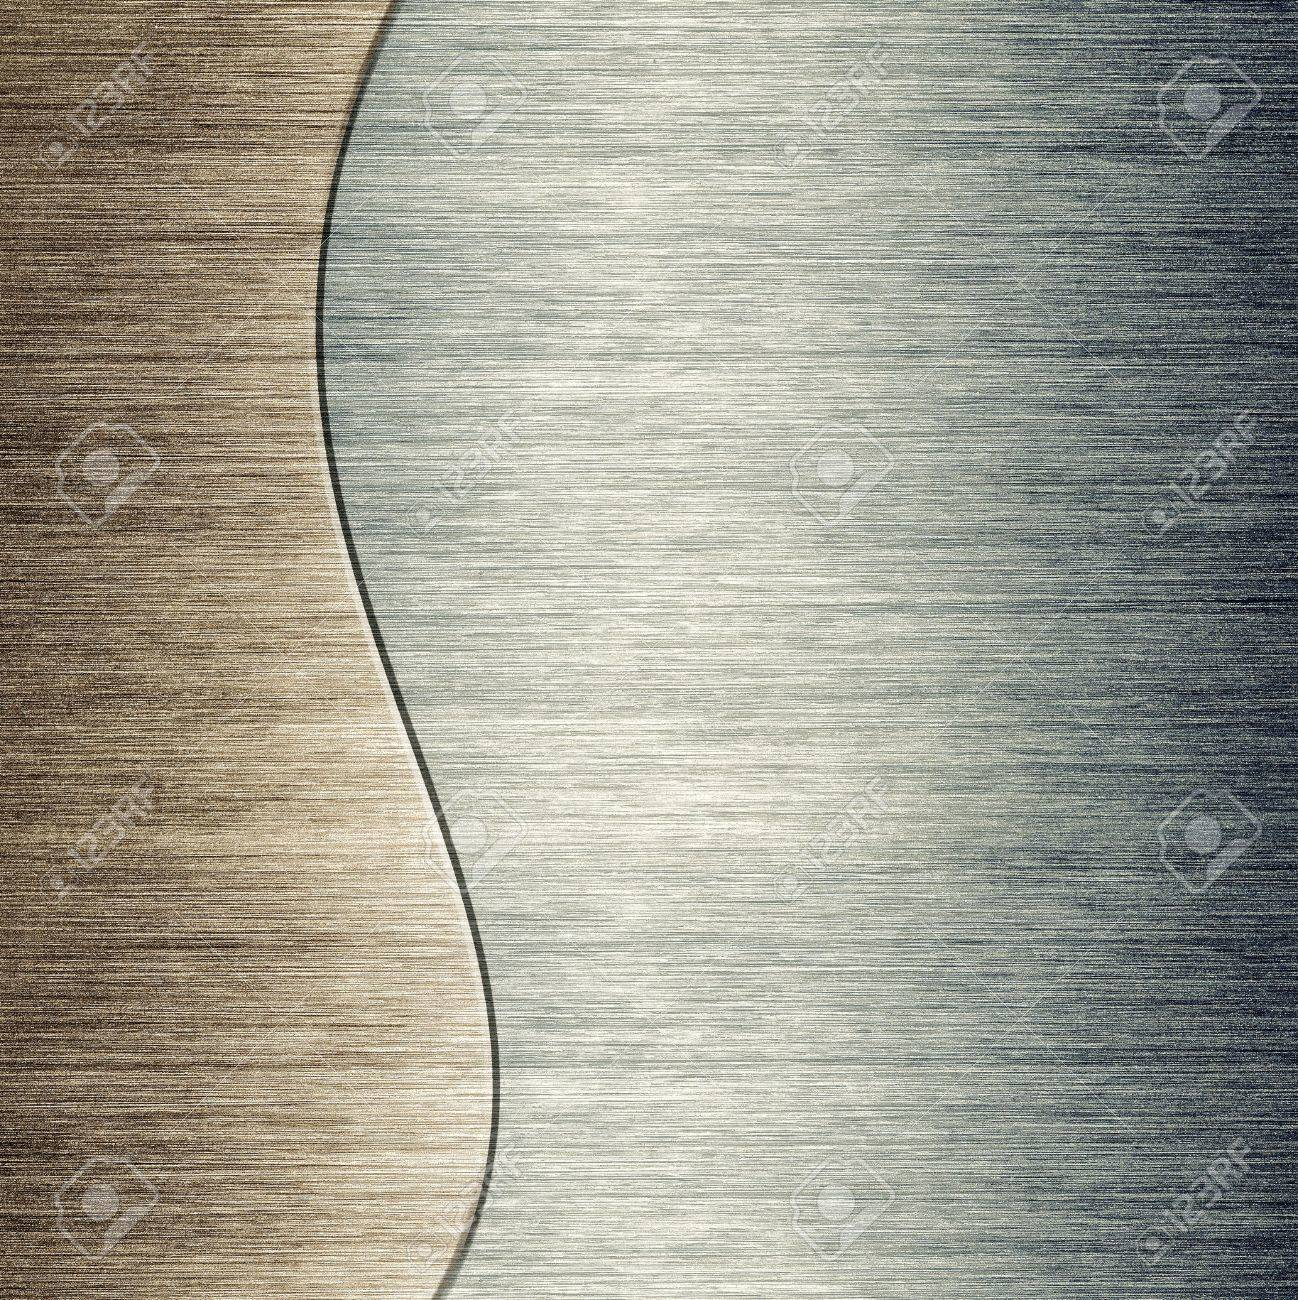 pattern of Brushed metal background  metal plate template Stock Photo - 13158571